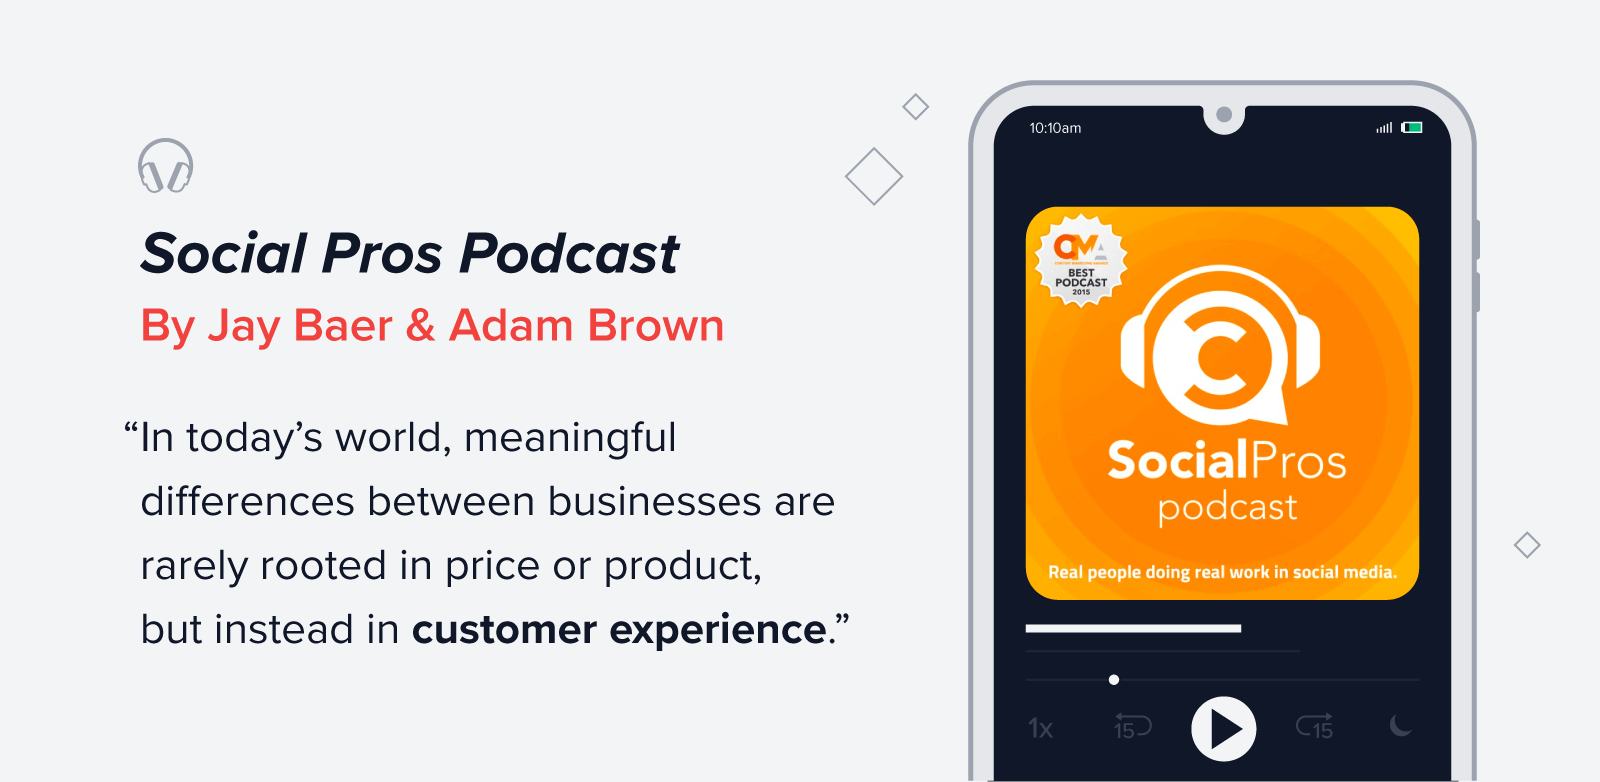 Social Pros podcast quote